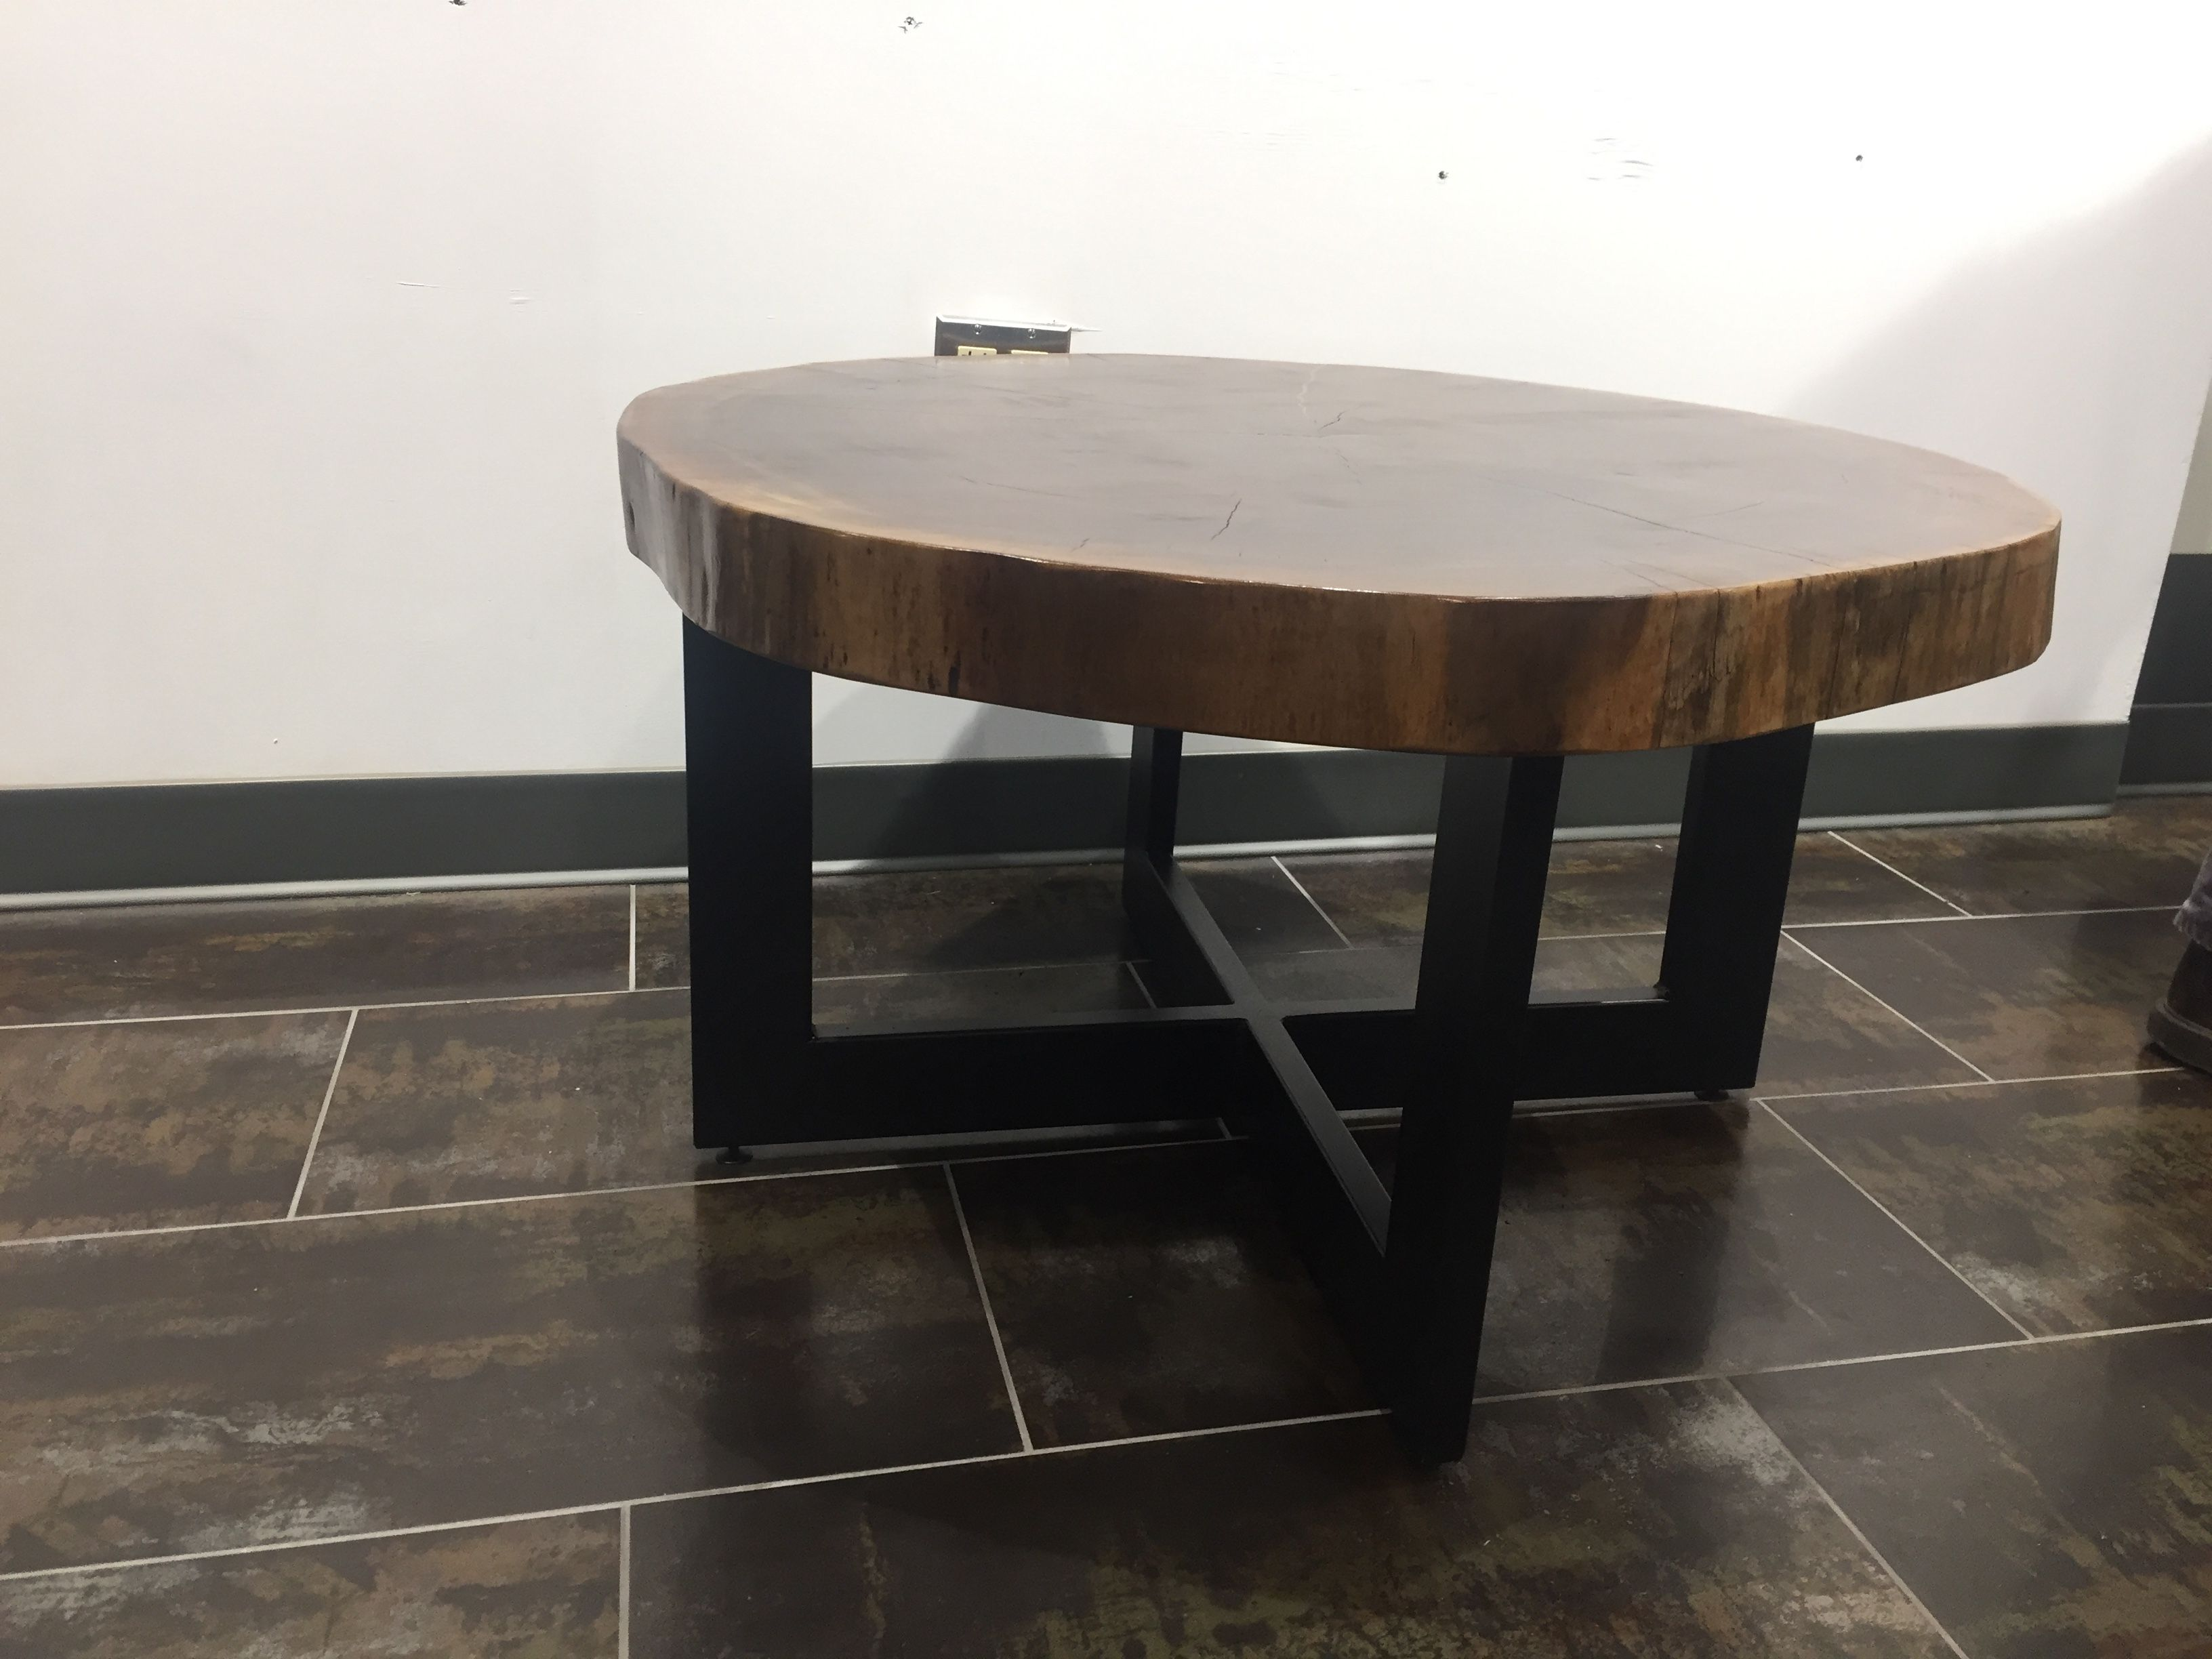 Custom Rustic Modern Reclaimed Wood Table Created By Monkey In The Metal Baltimore Md Madeinbaltimore